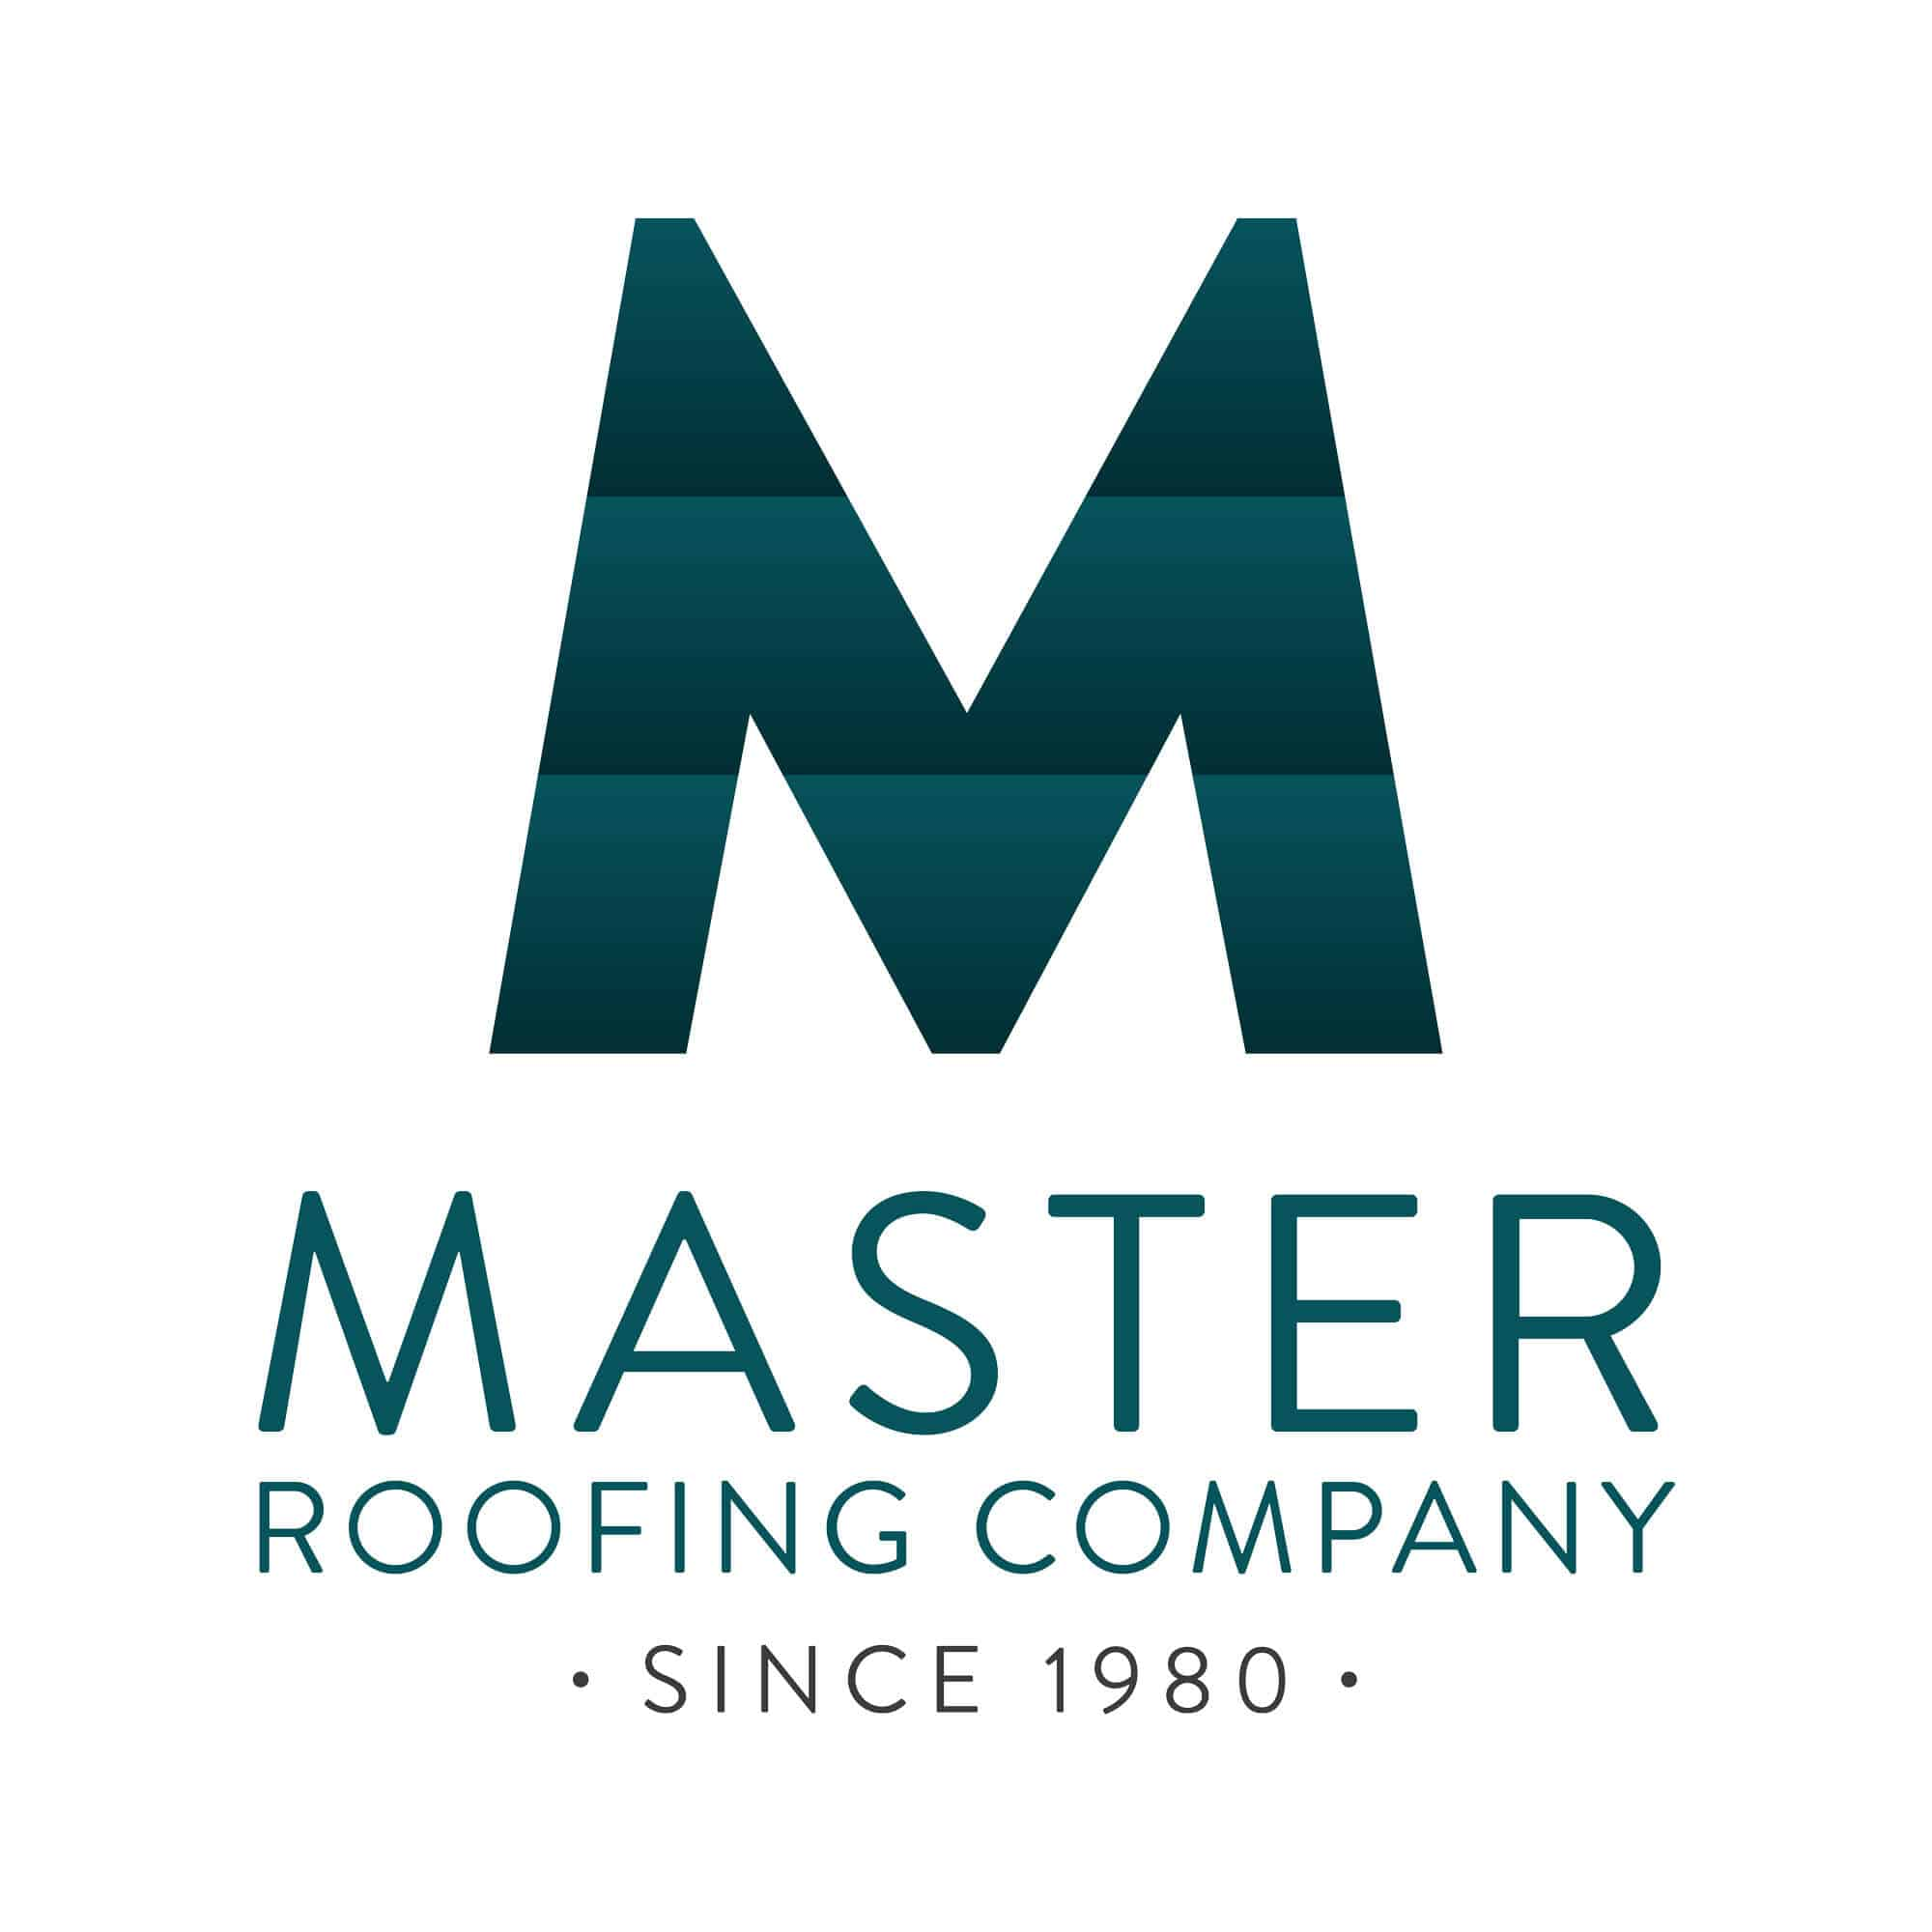 master roofing company logo design graphic design logo design rh uzimedia com roofing company logo maker roofing company logo template